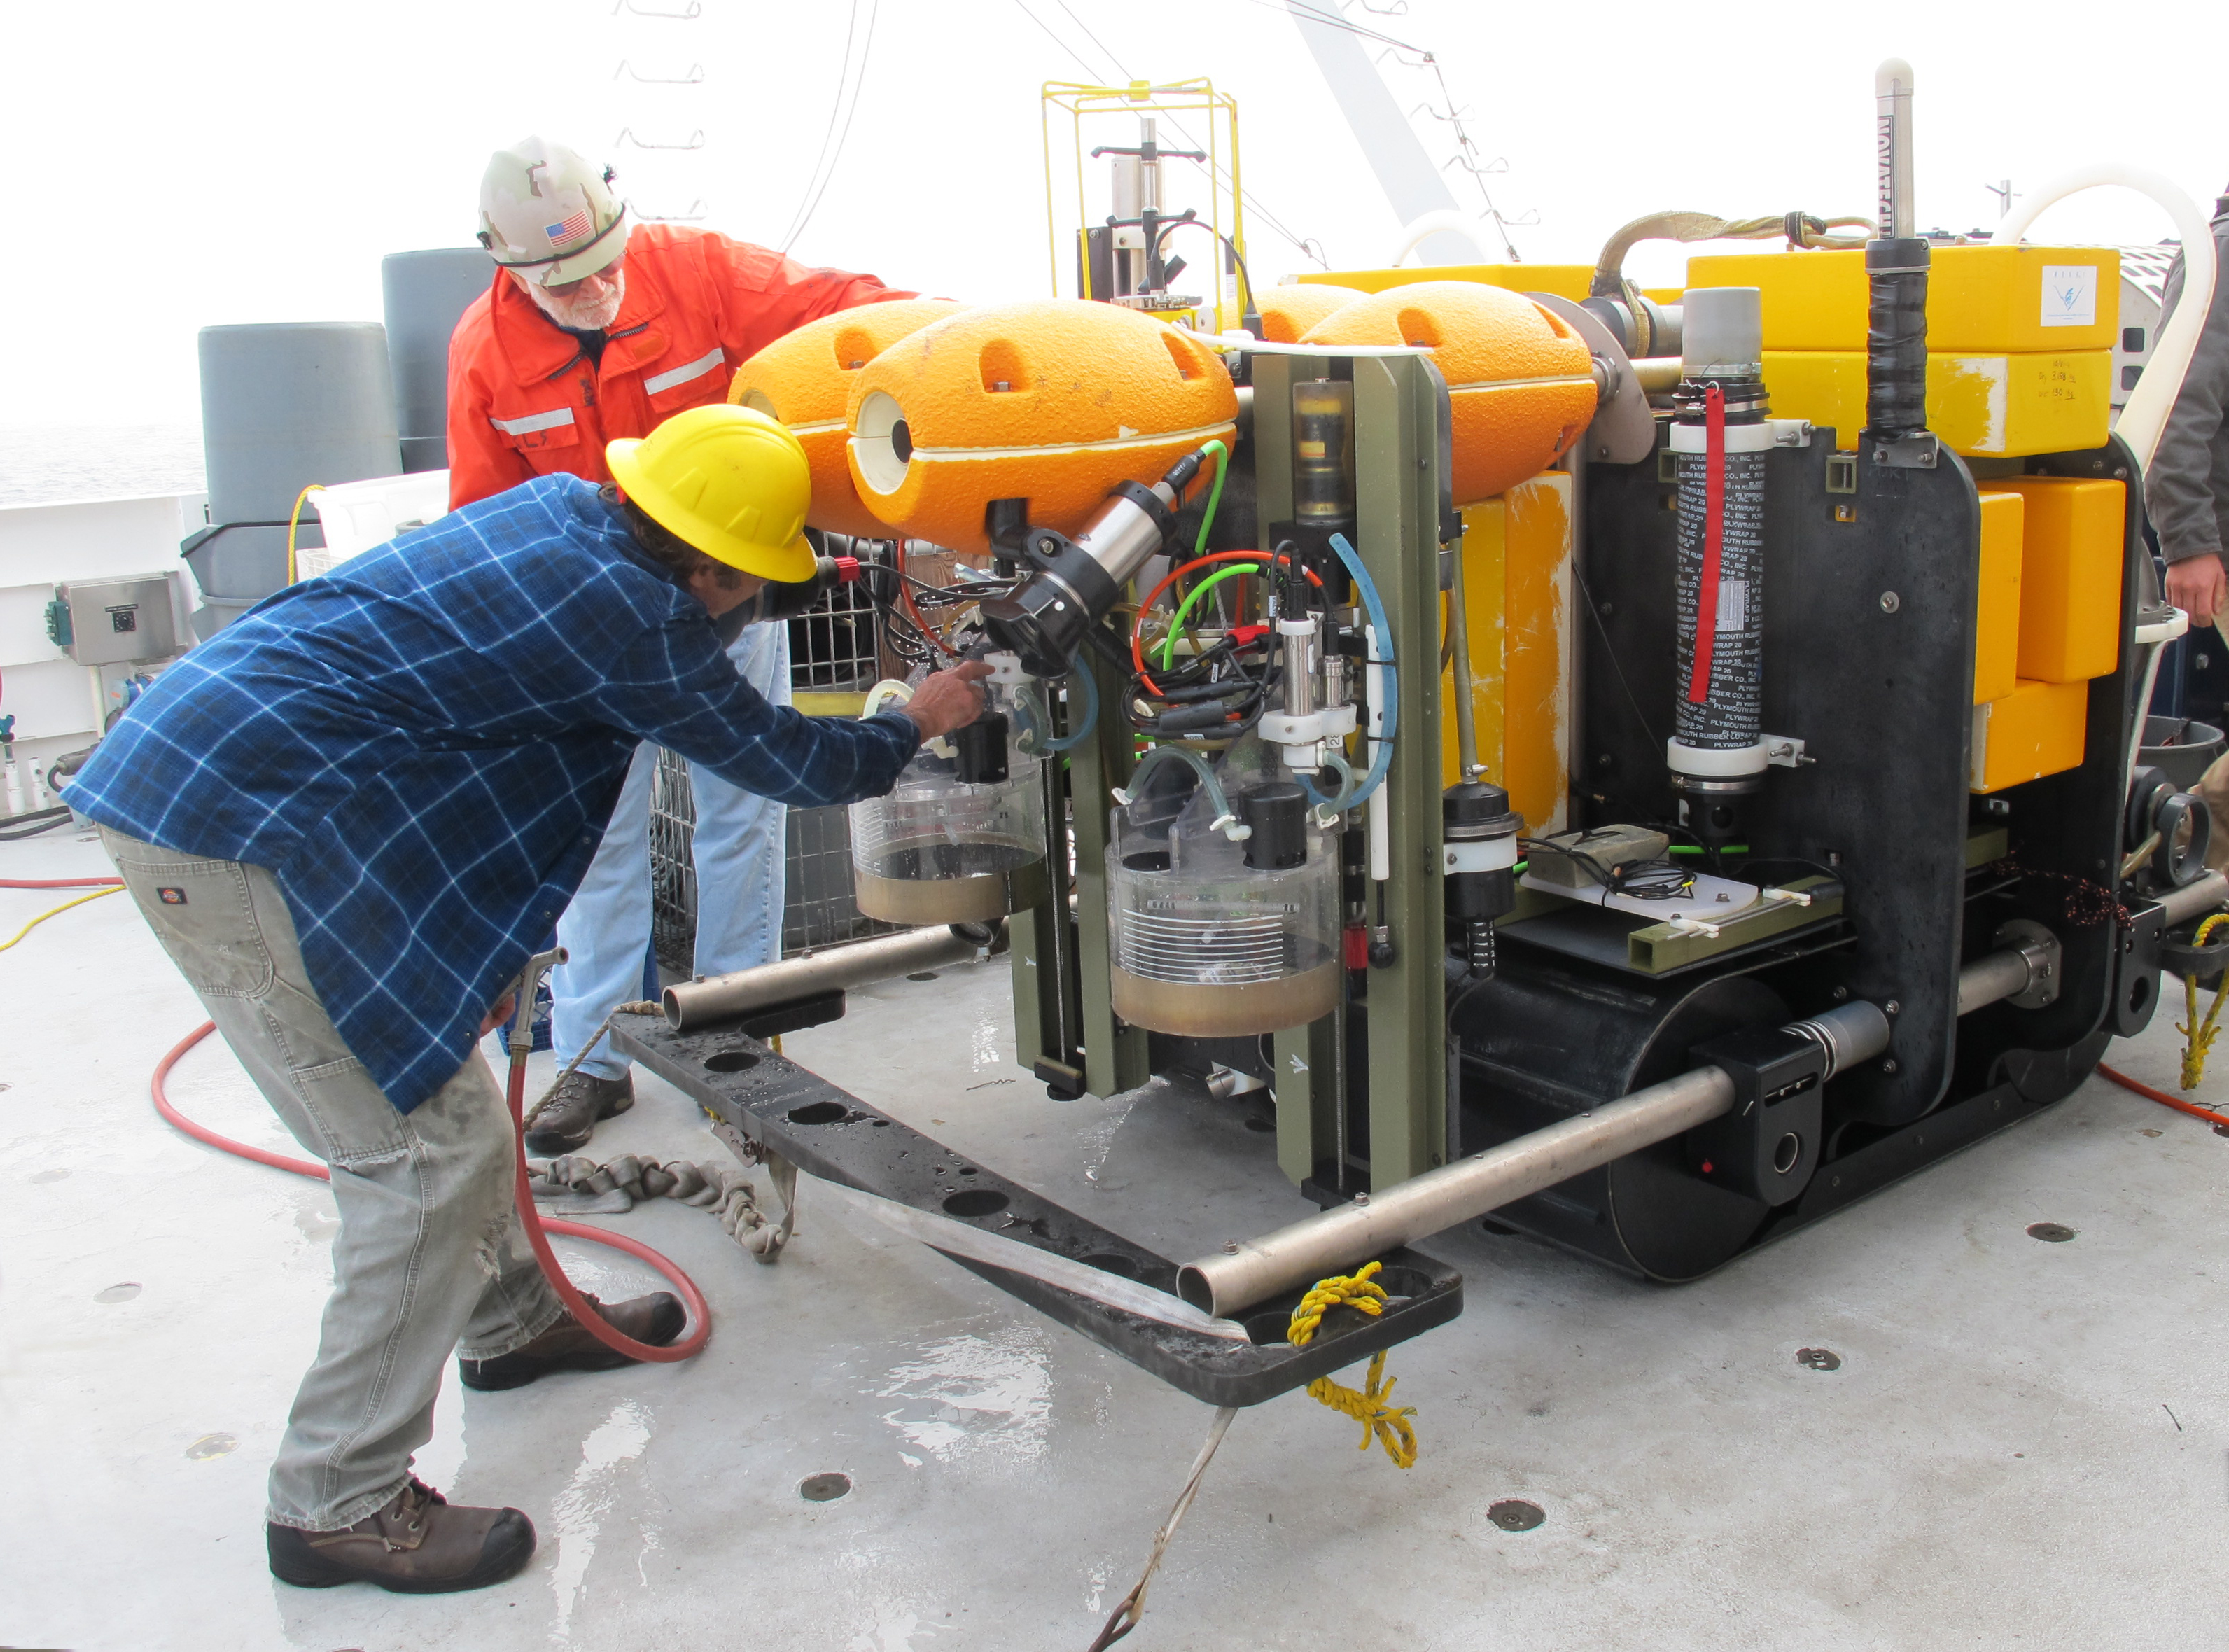 Ken Smith in red and John Ferreira in blue are inspecting the Rover on the deck of the R/V <em>Western Flyer</em>